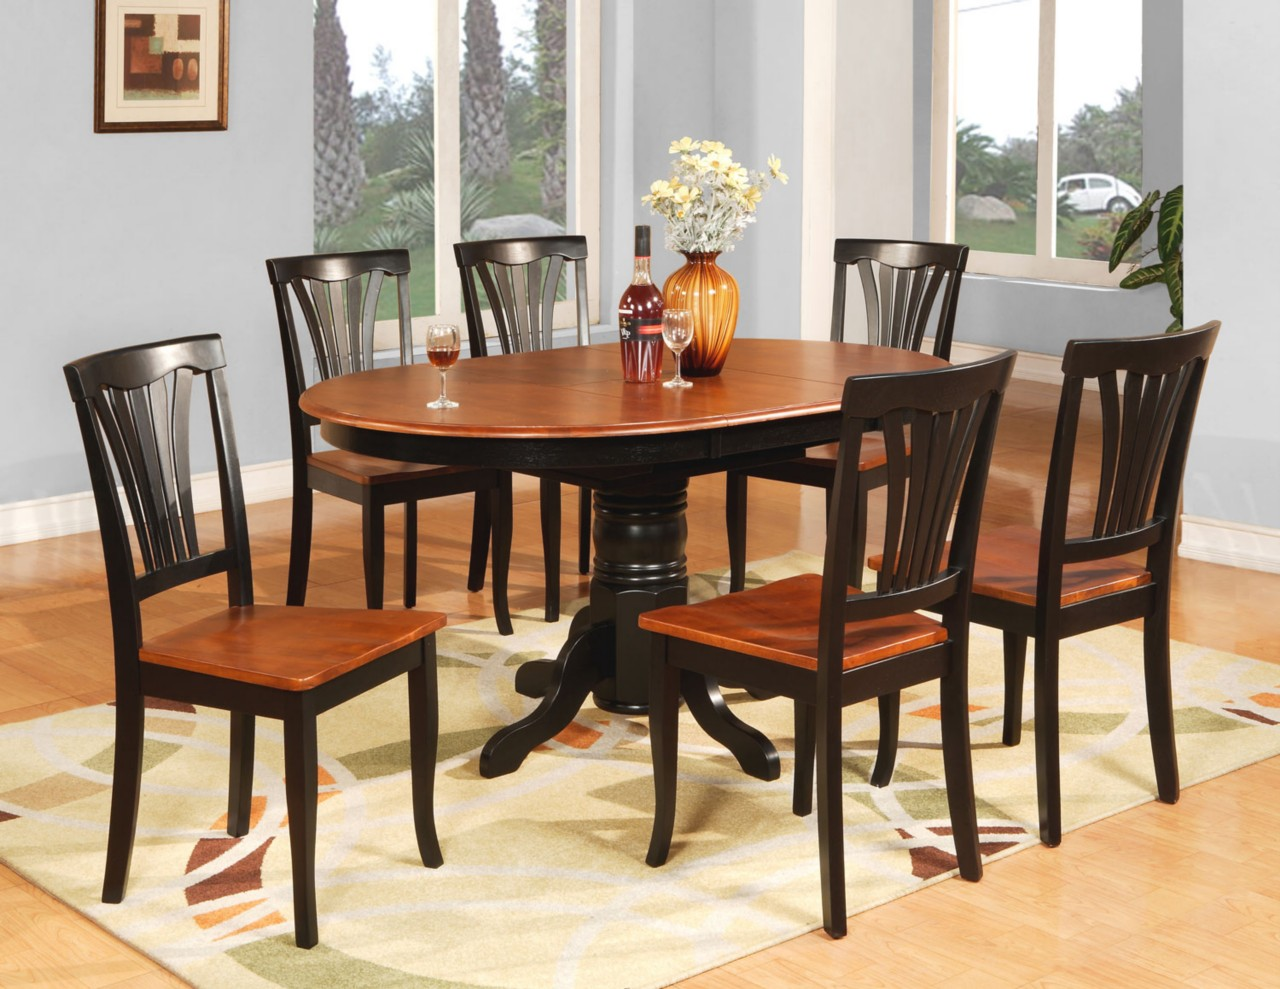 7 pc oval dinette kitchen dining room table amp 6 chairs ebay 25 best kitchen dining ideas on pinterest contemporary